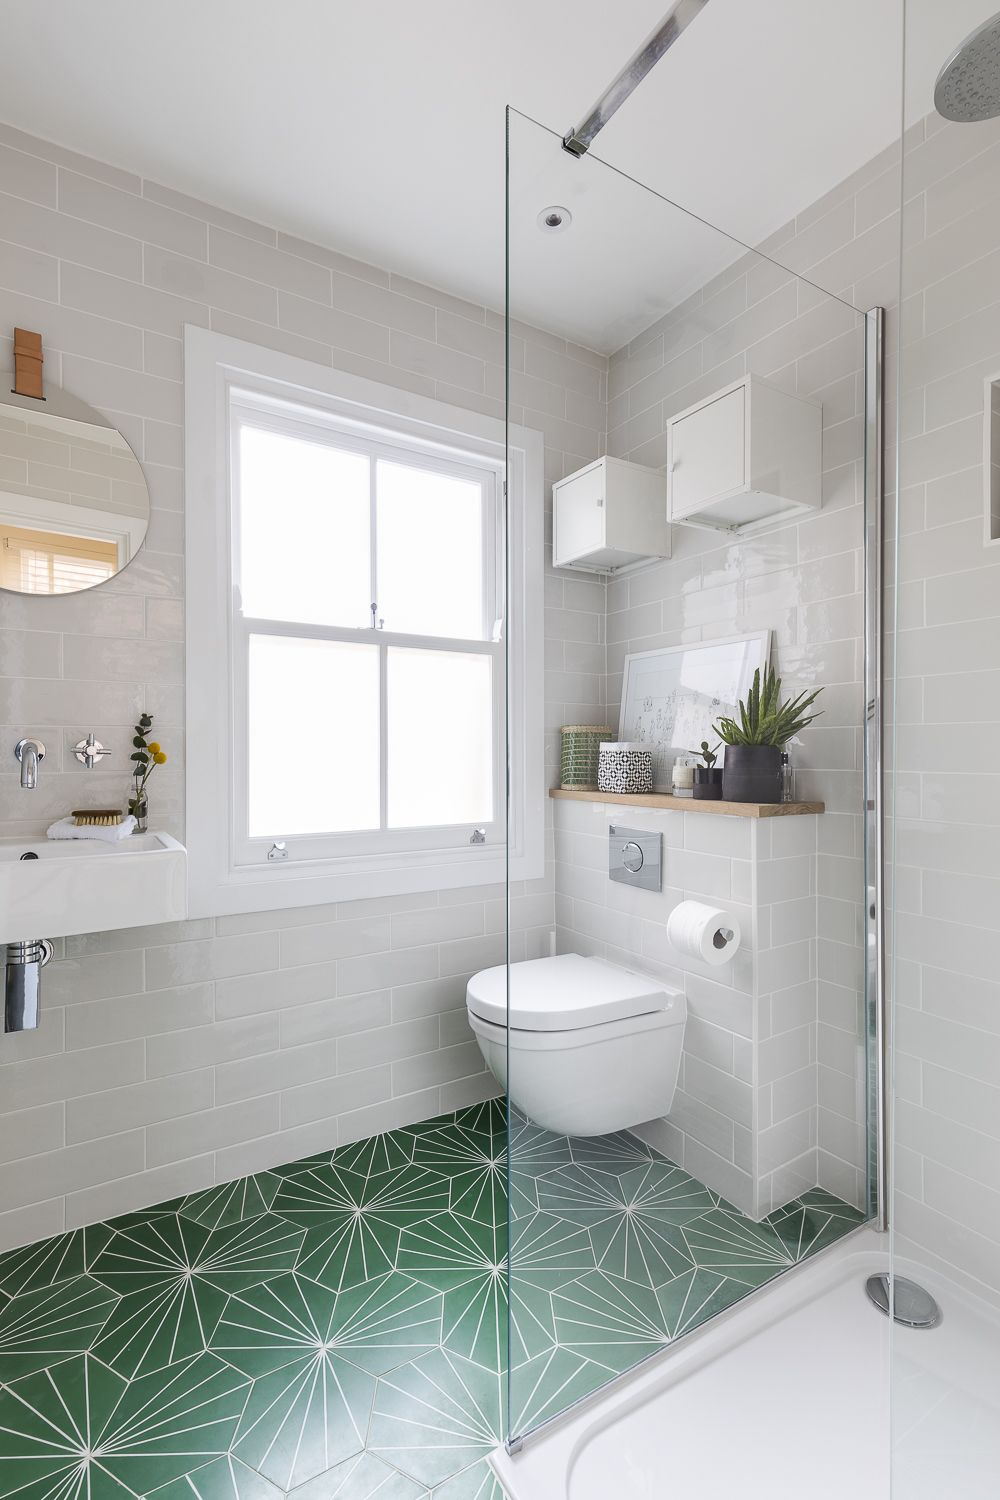 Boutique Hotel Bathroom Design. Green Floor Tiles By Marrakech Design Make  A Bold And Modern Statement And Inject Vibrant Colour Into The Shower Room,  ...